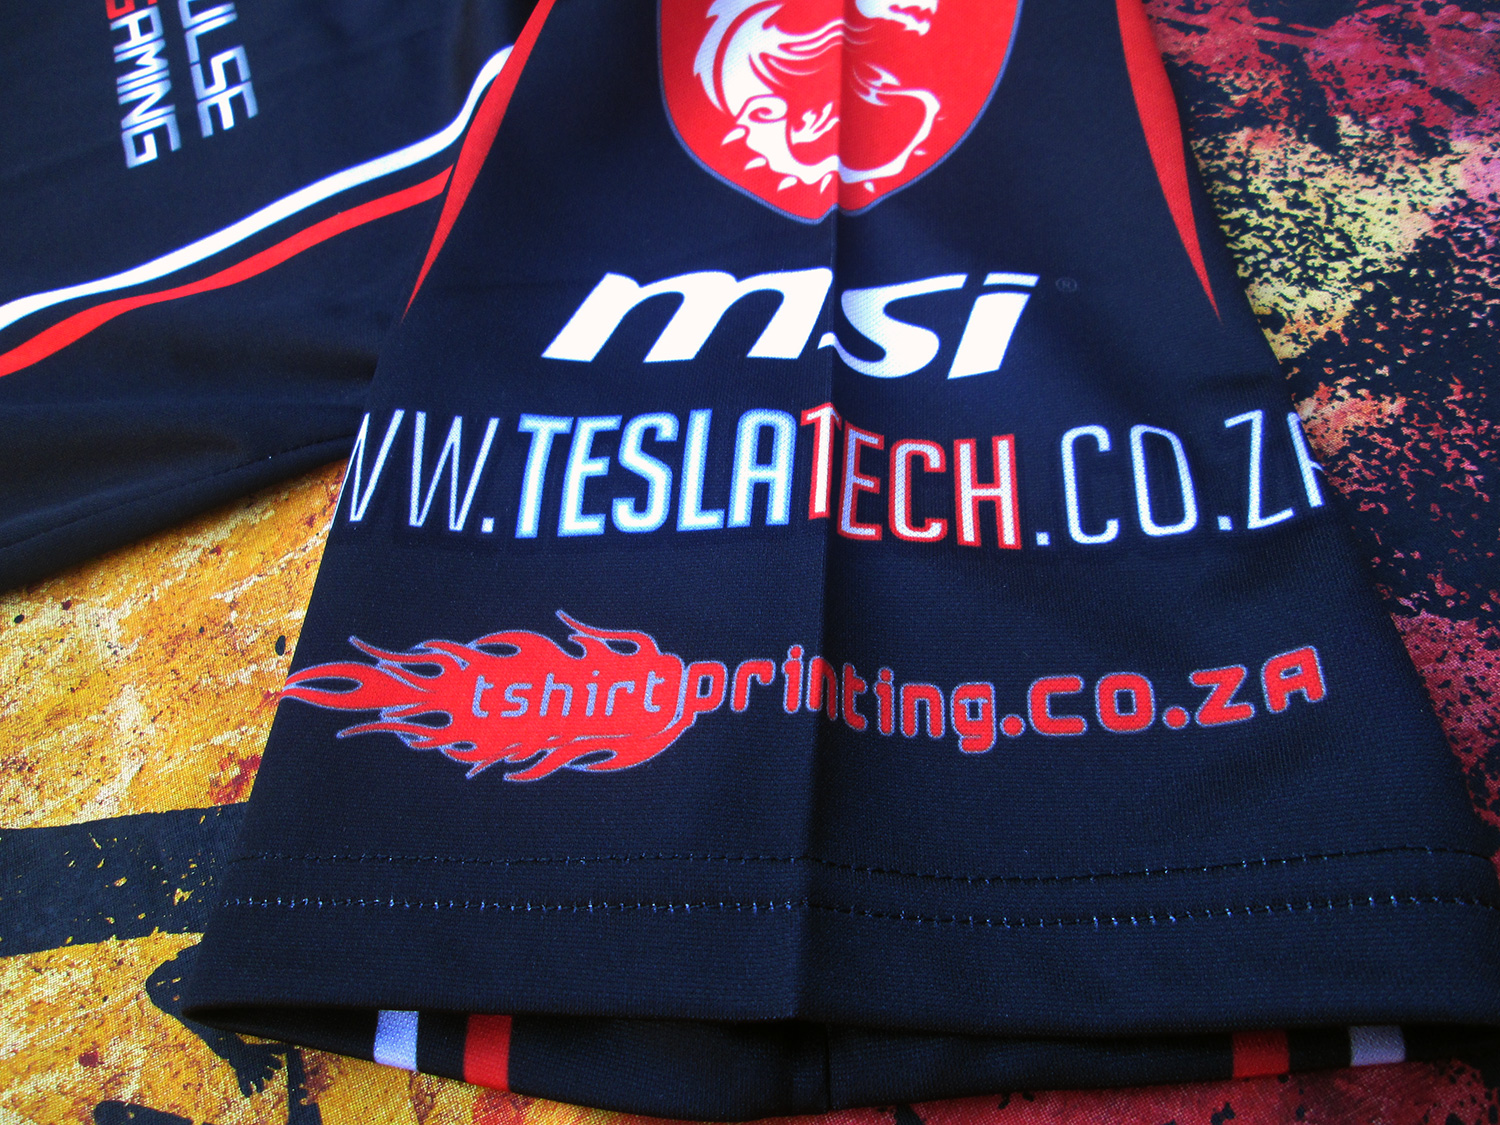 tshirtprinting.co.za--dye-sublimated-shirt-printer-johannesburg